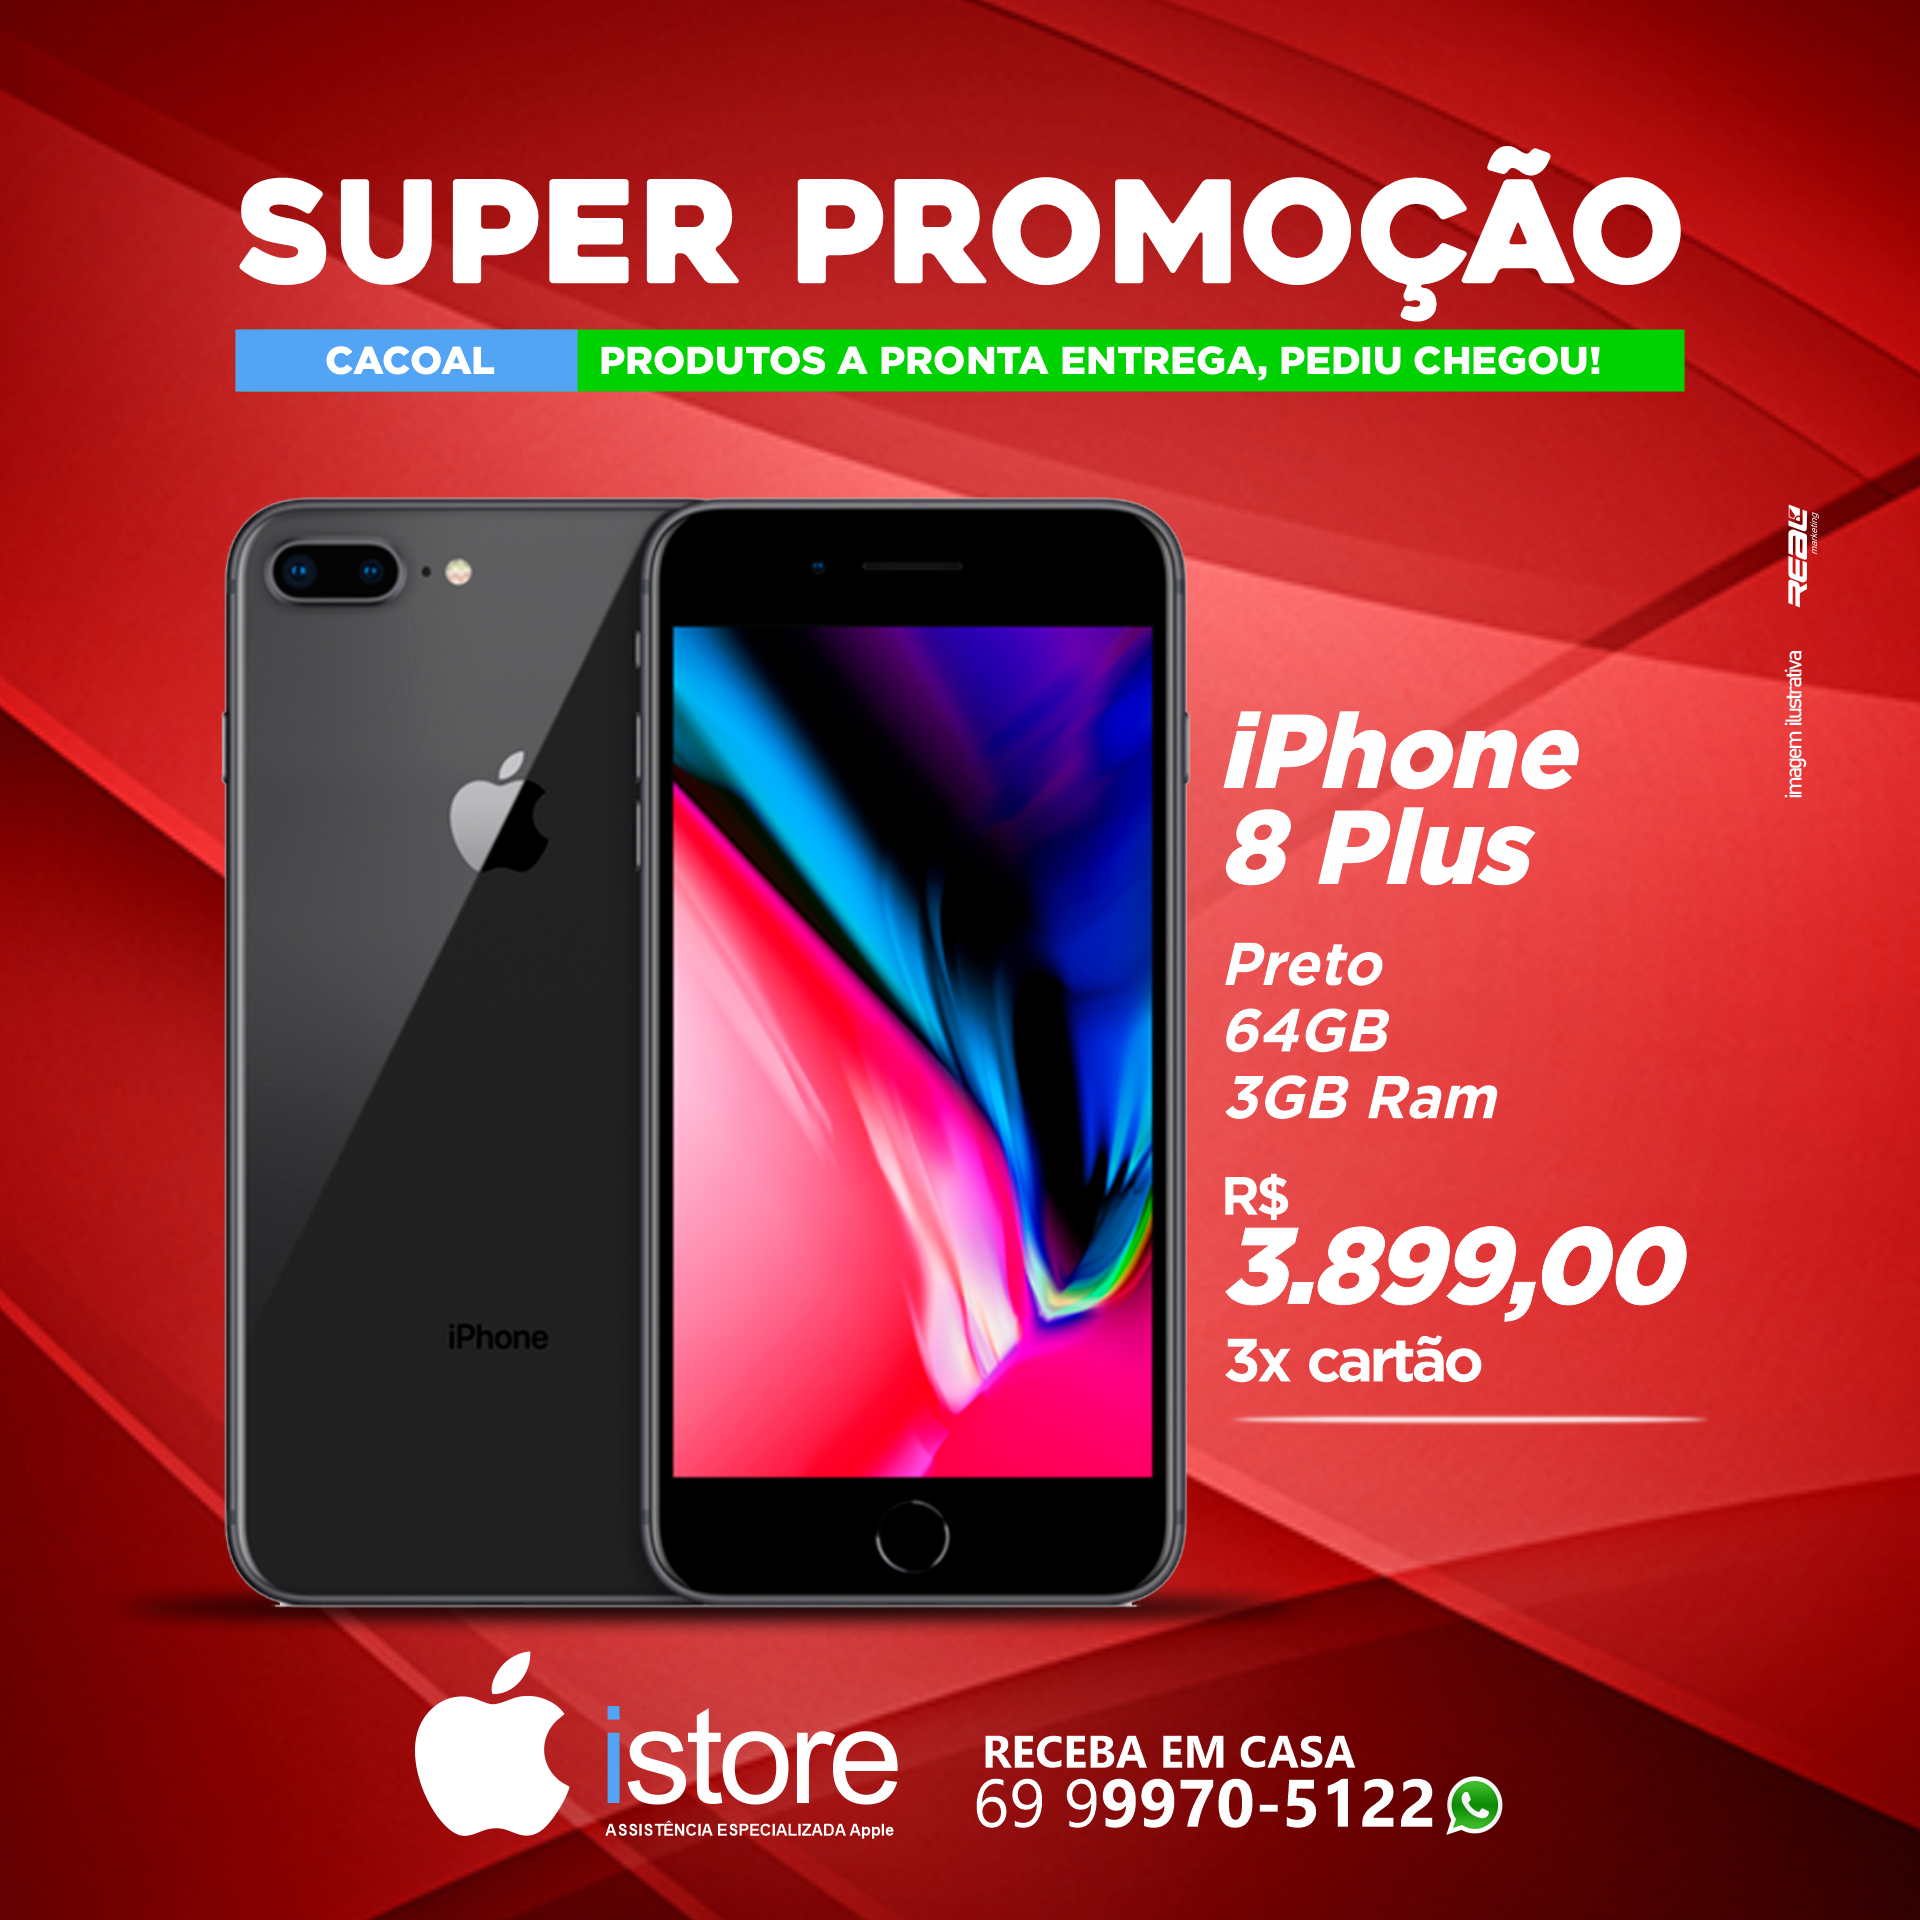 TABLOIDE ISTORE 23-06-20